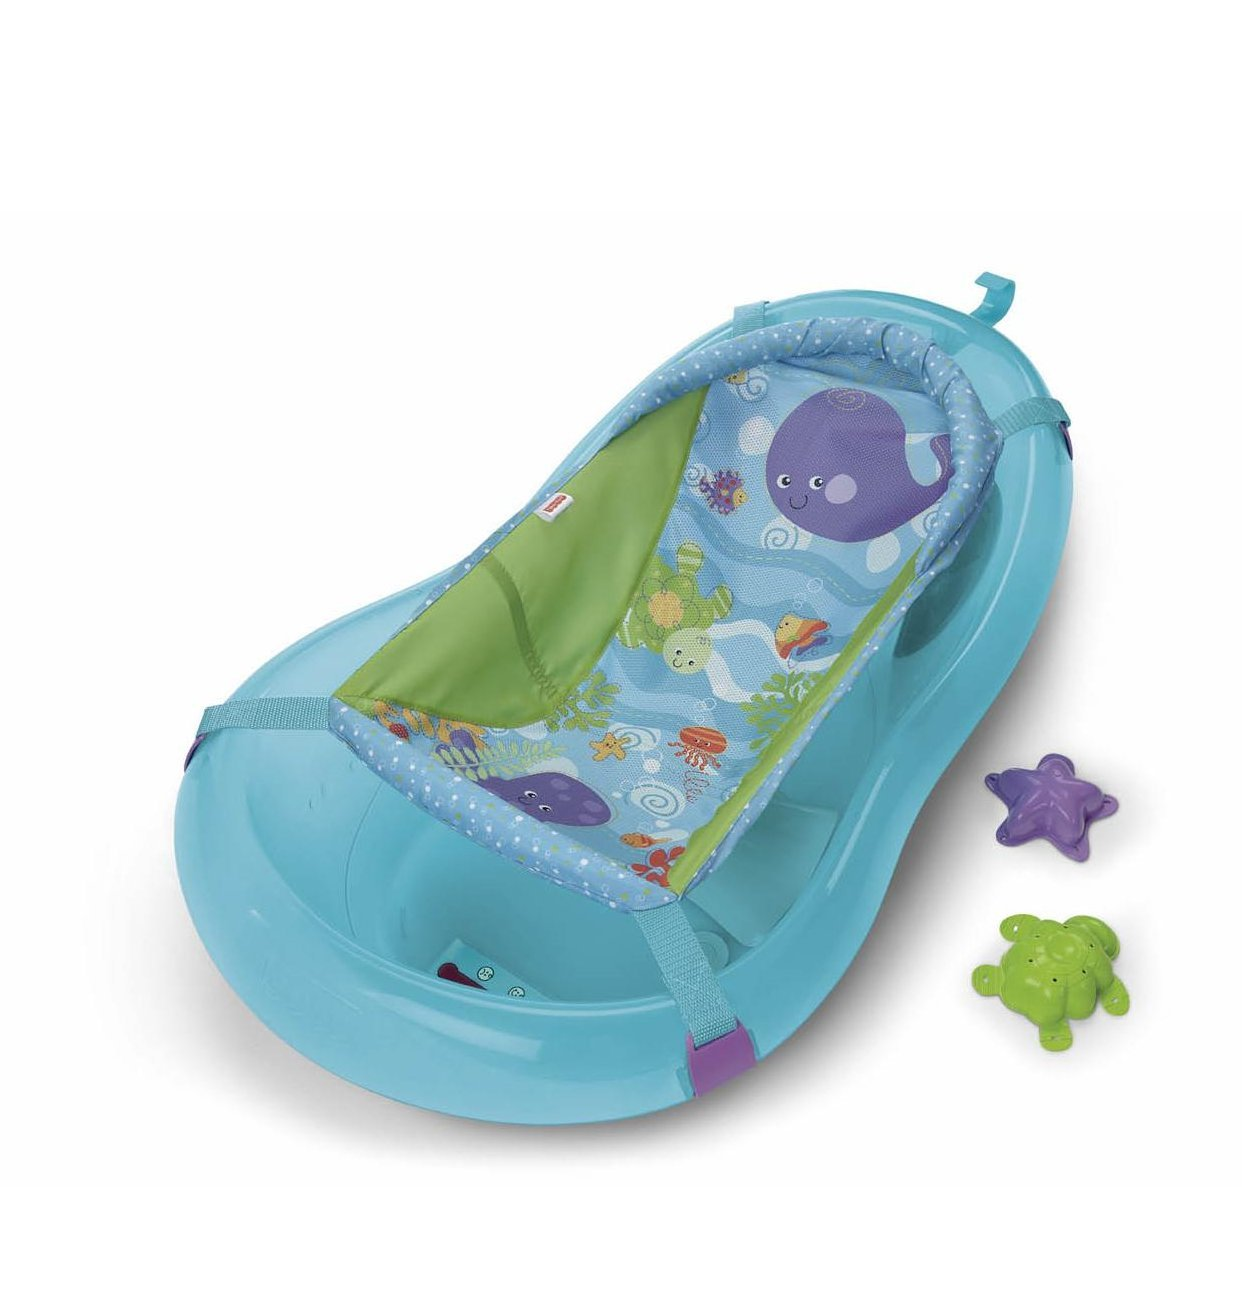 Amazon.com : Fisher-Price Ocean Wonders Aquarium Bath Center : Baby ...